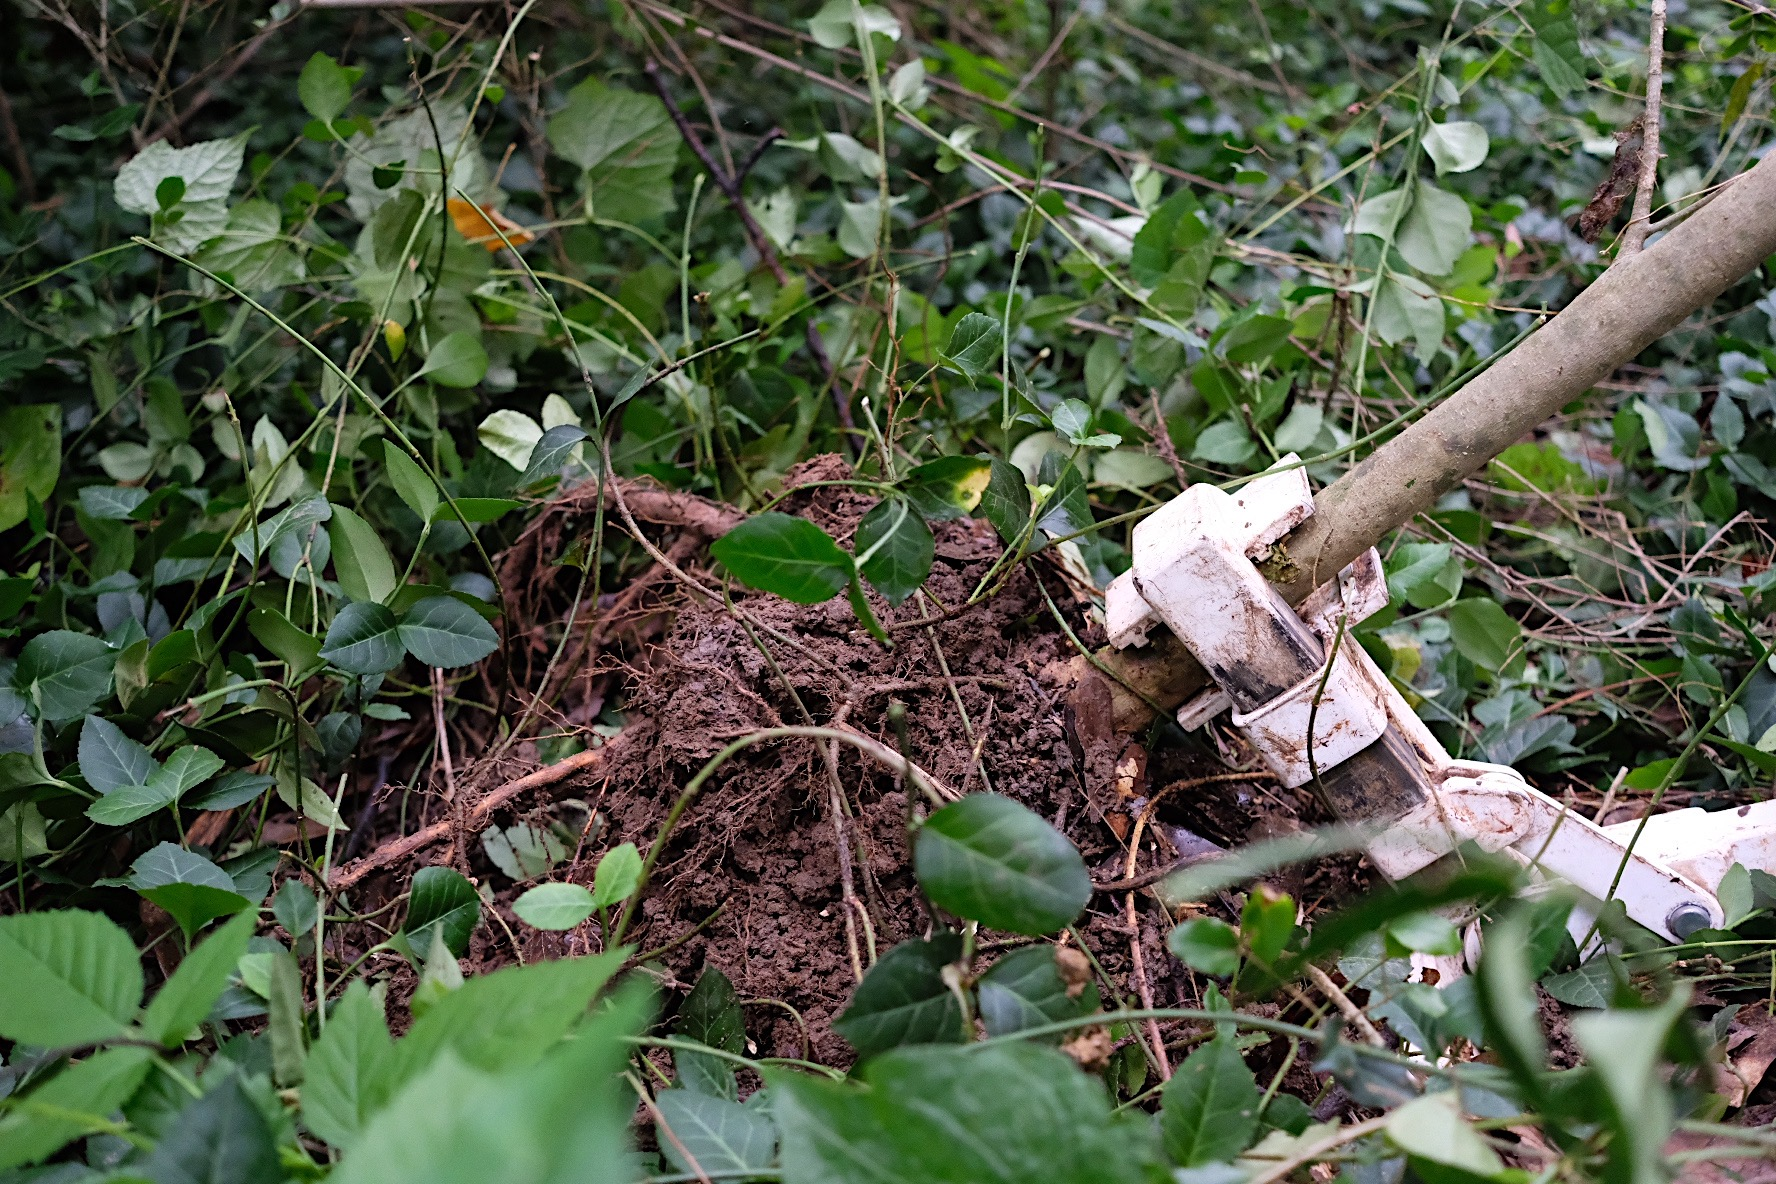 Uprooting privet using a tool